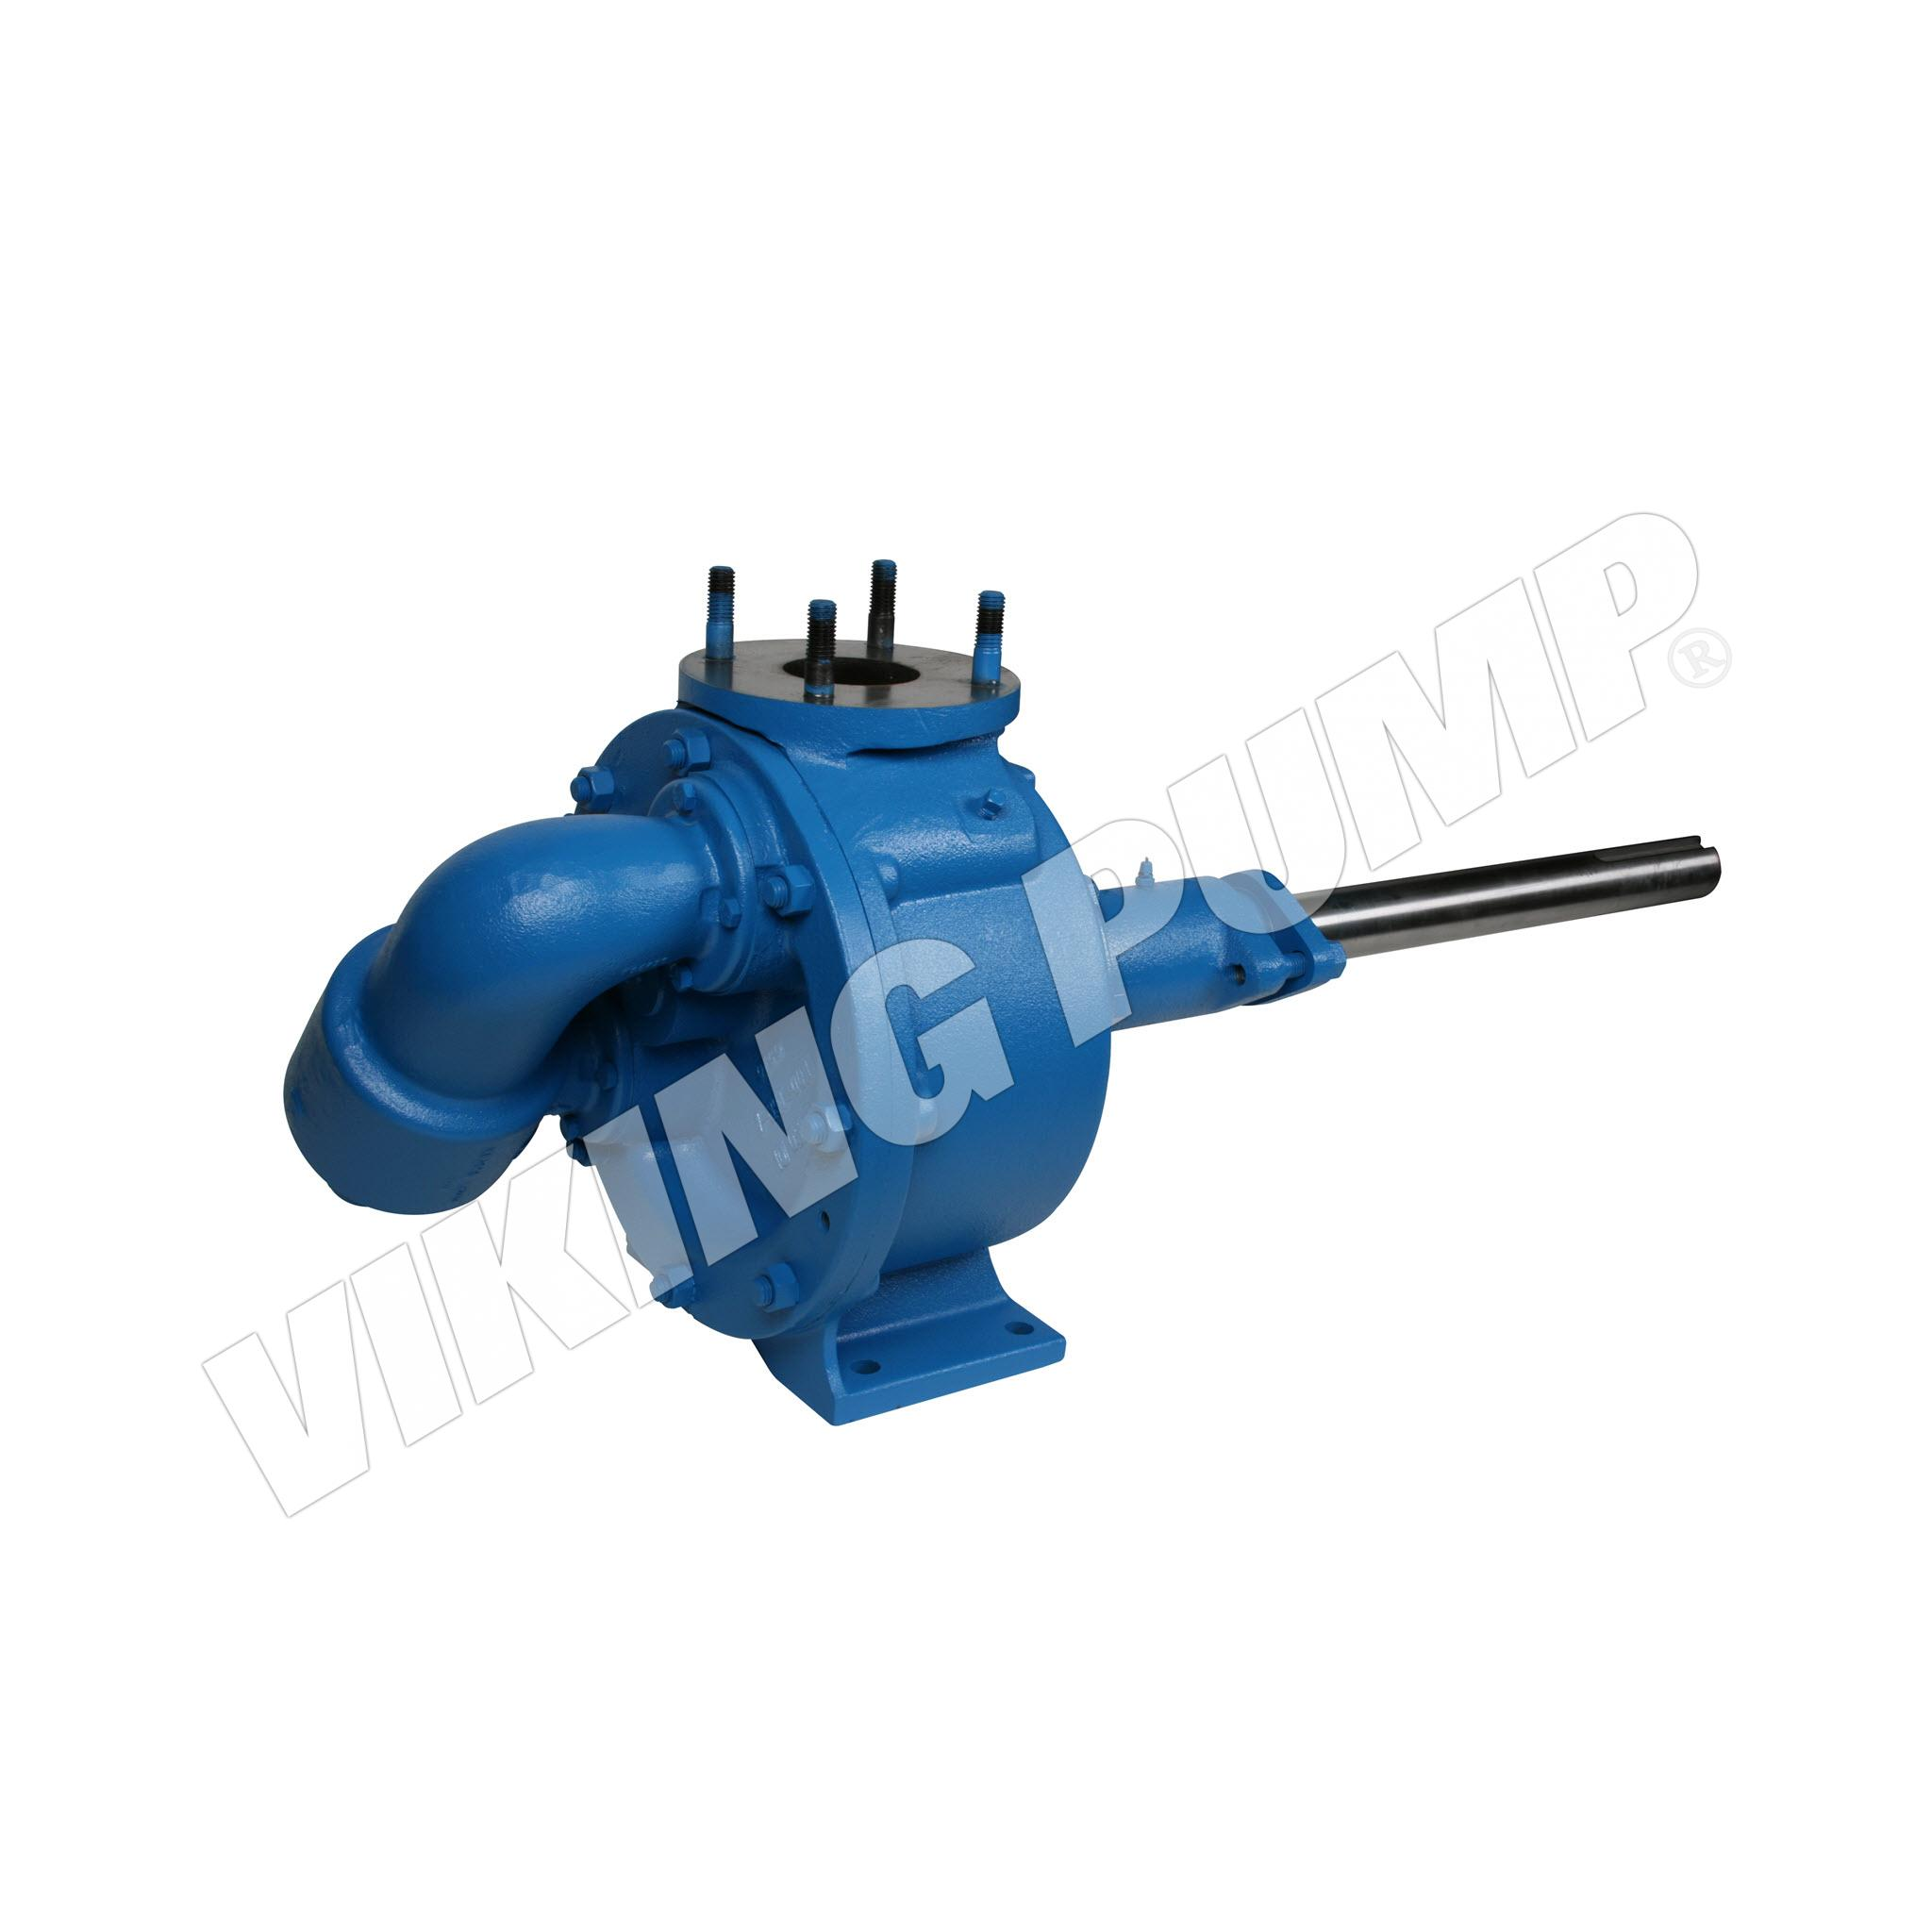 Model Q32, Relief Valve, Flange Port Pump